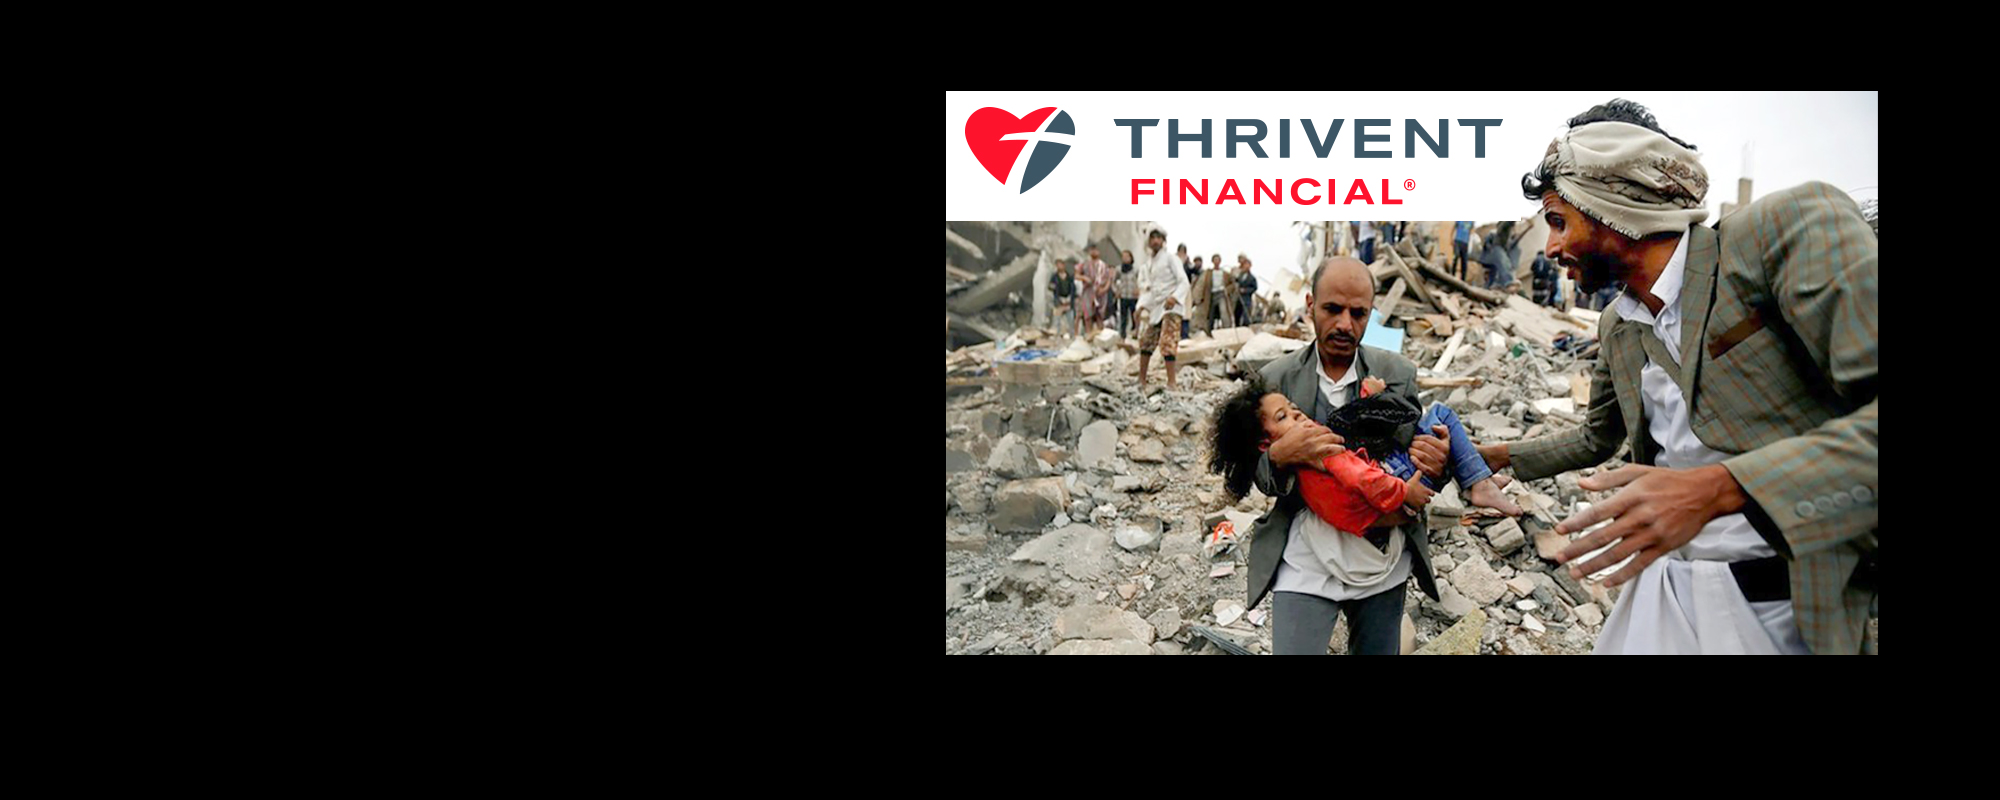 Tell Thrivent Financial to divest from weapon manufacturers